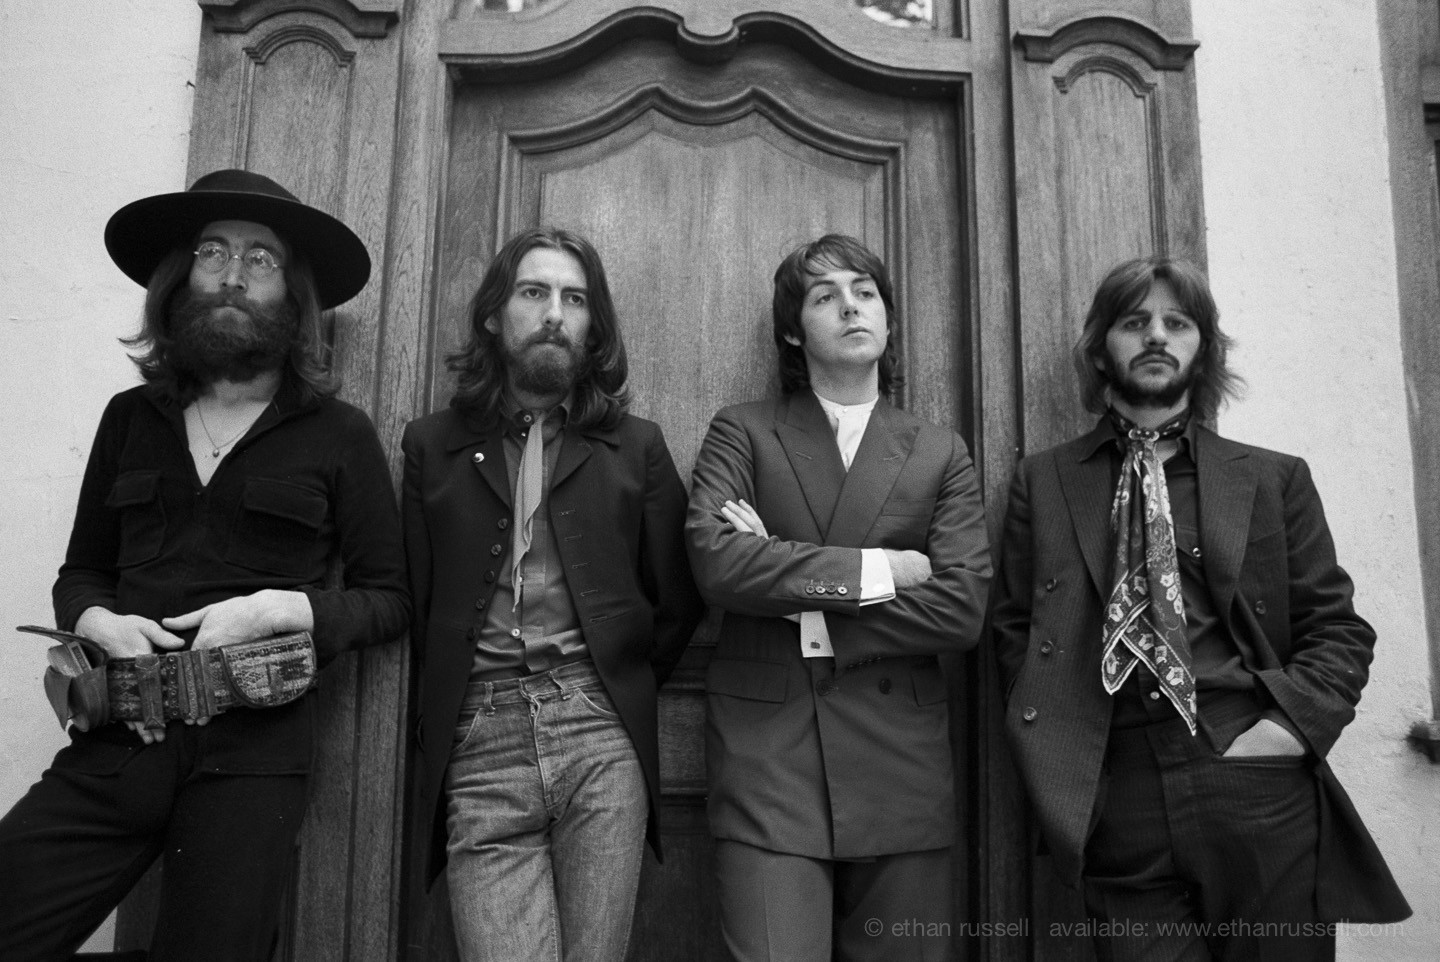 The_Beatles_Last_Session_1969_Ethan_Russell_2048x2048 shop ethanrussell com